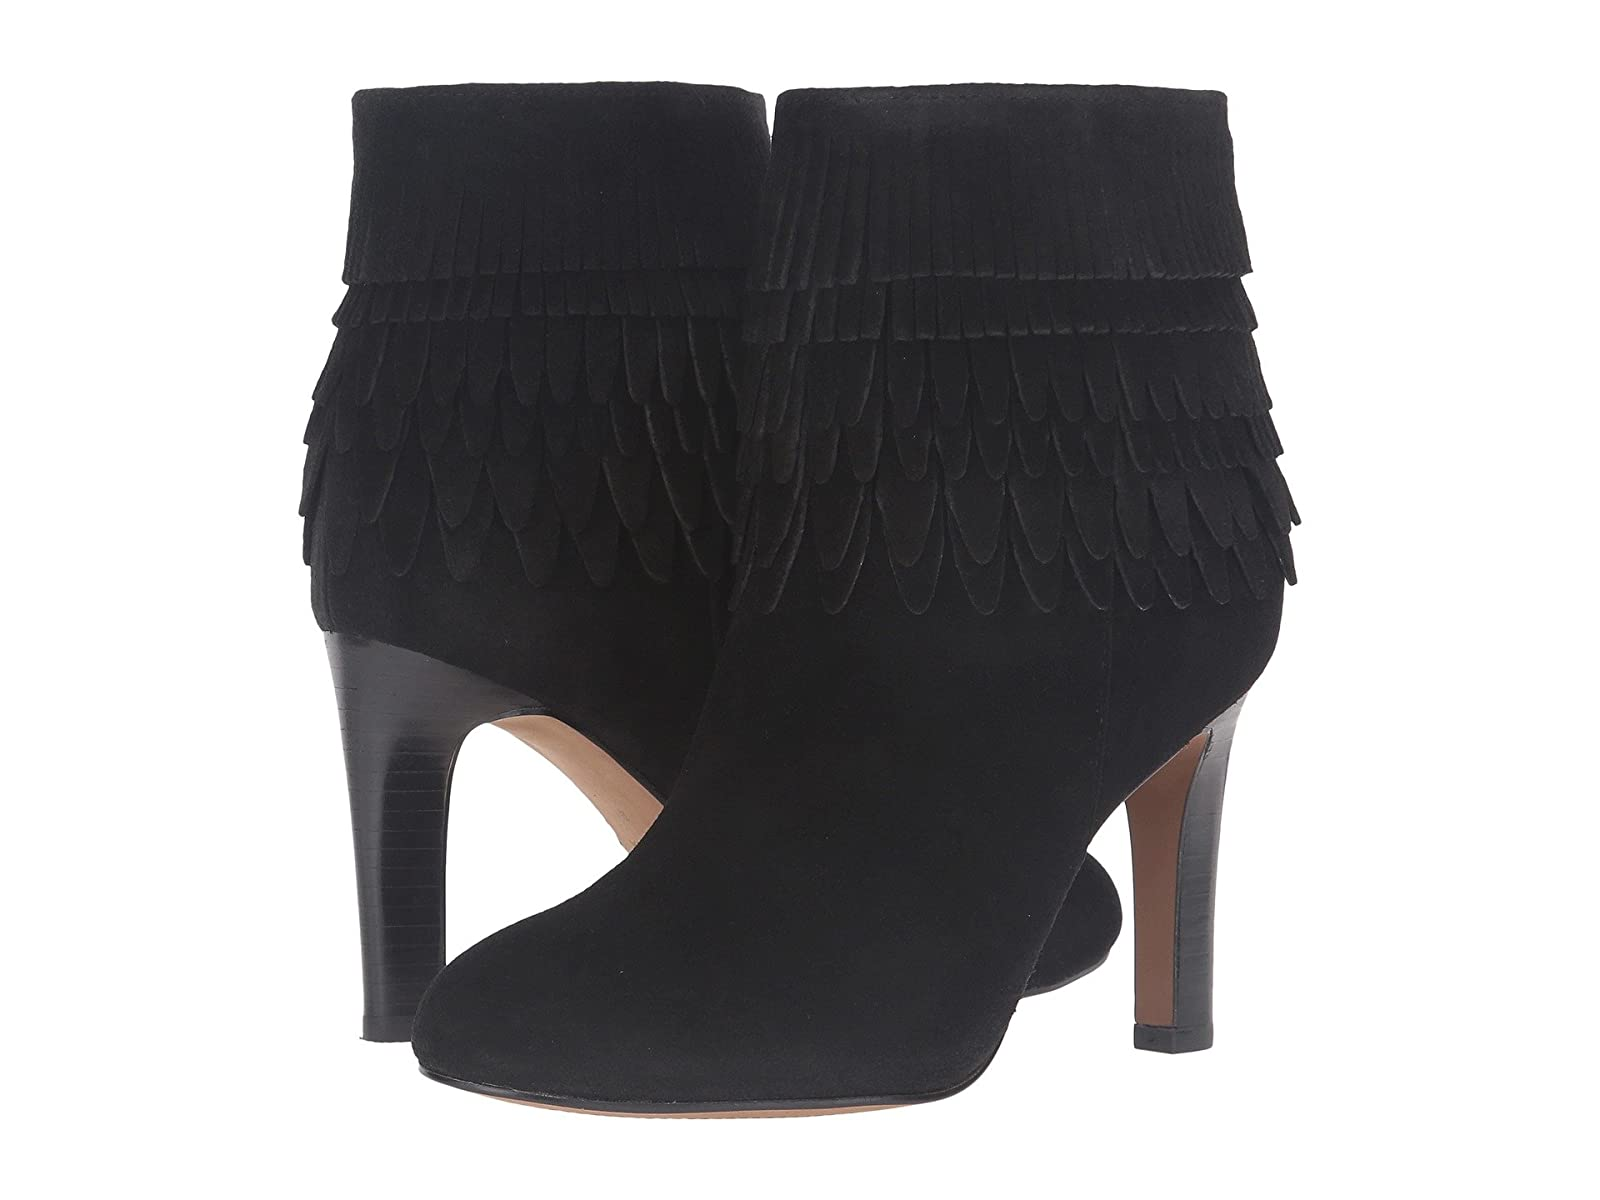 Isola LaytonCheap and distinctive eye-catching shoes